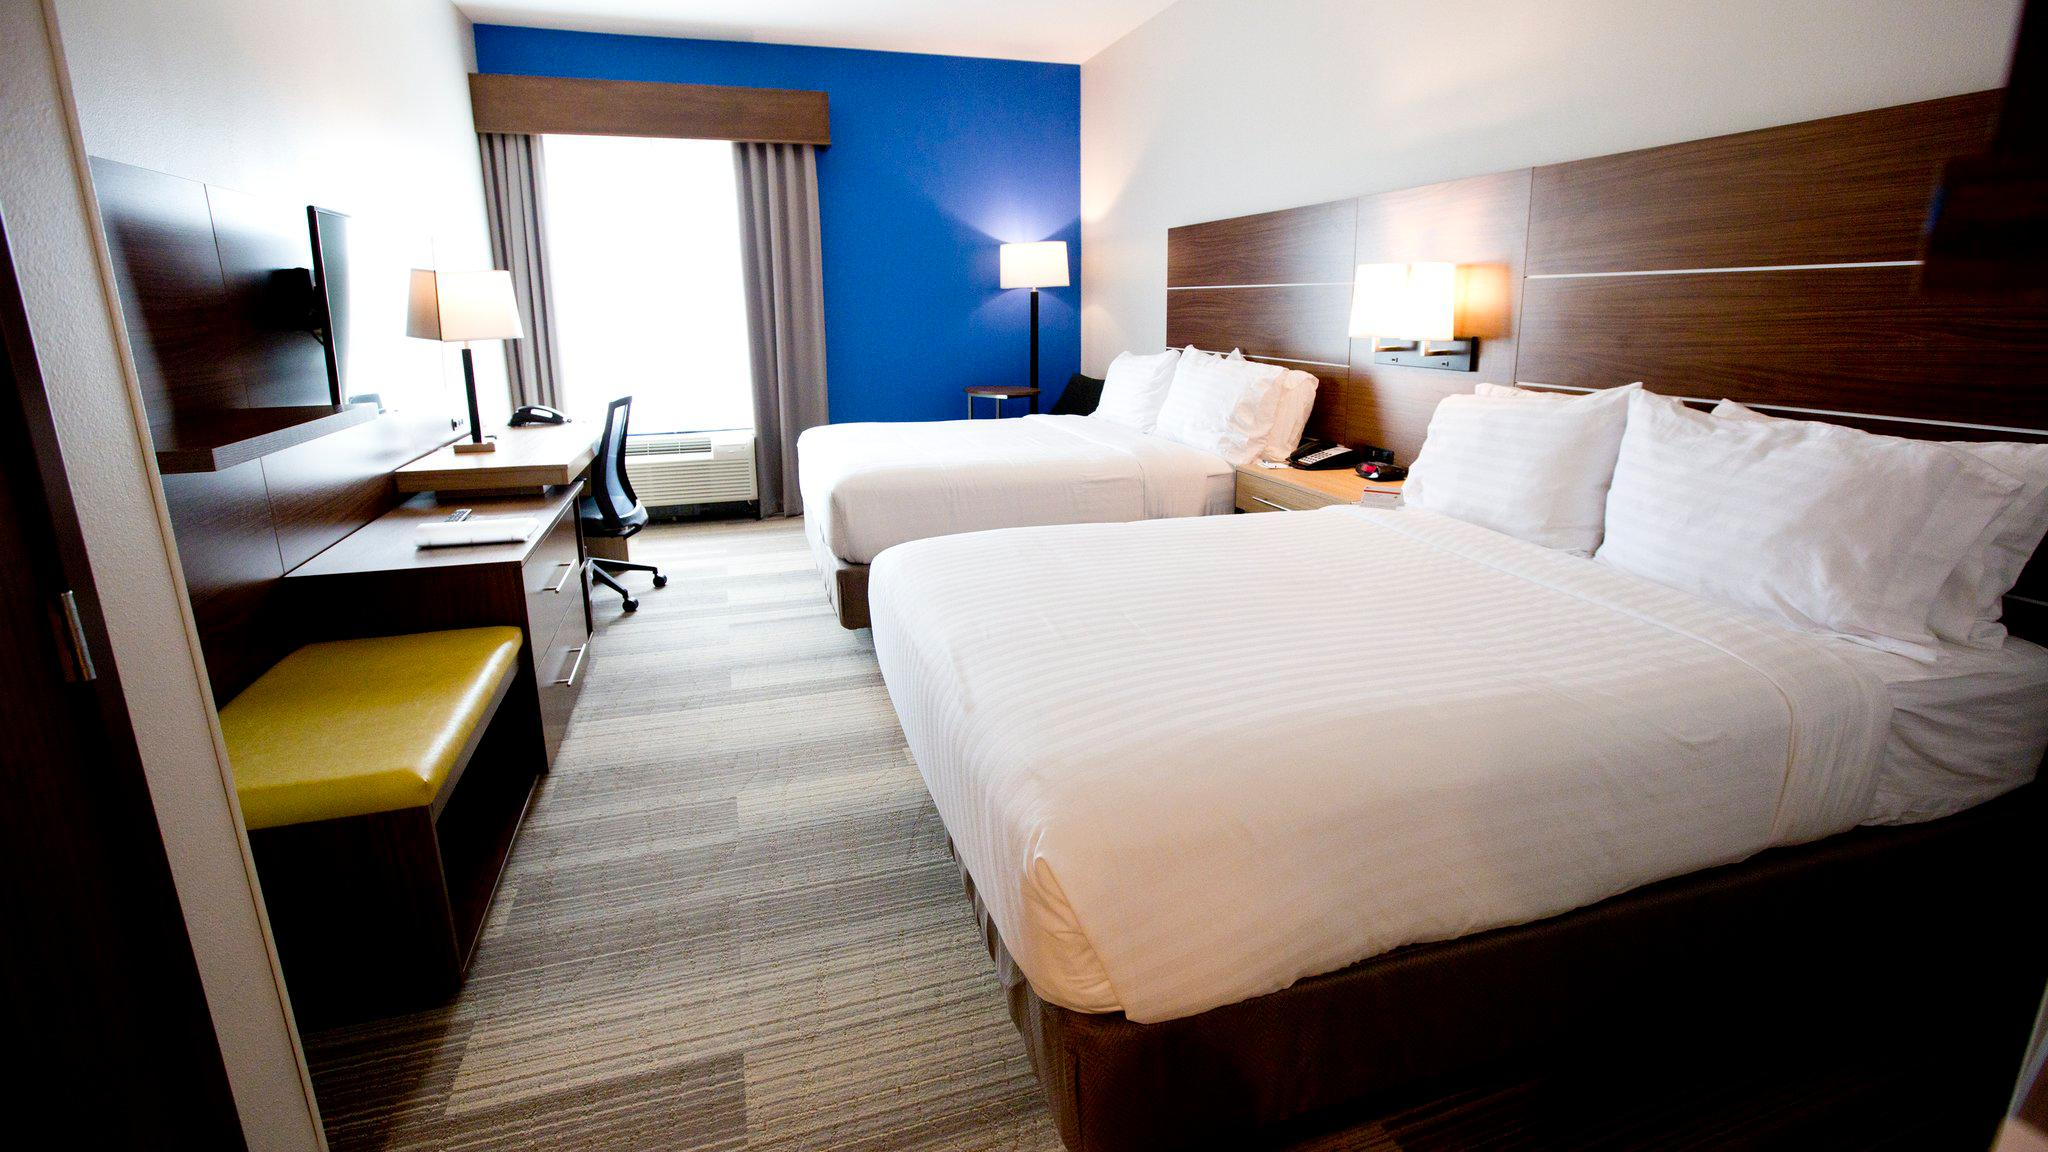 Holiday Inn Express & Suites Houston NW - Hwy 290 Cypress